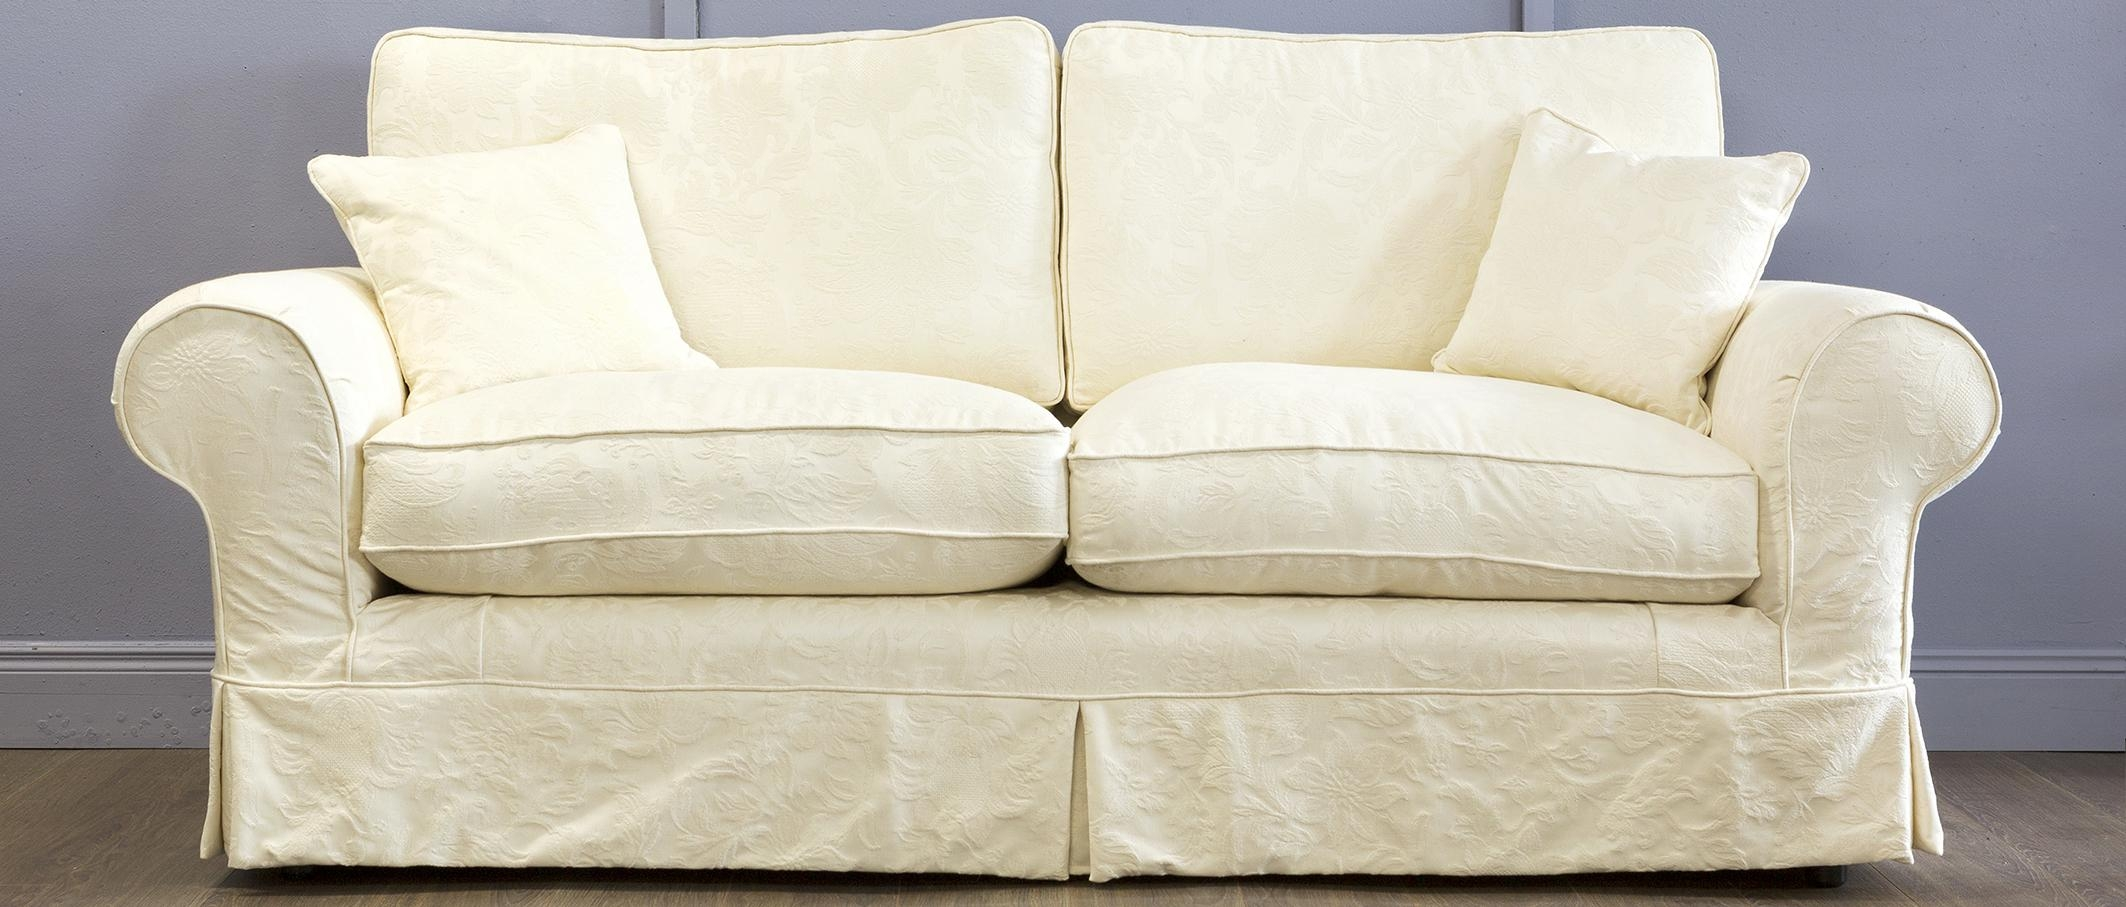 Sofas Center : Popular Washable Sofa Slipcovers Buy Cheap Brown With Regard To Sofa With Removable Cover (View 2 of 20)